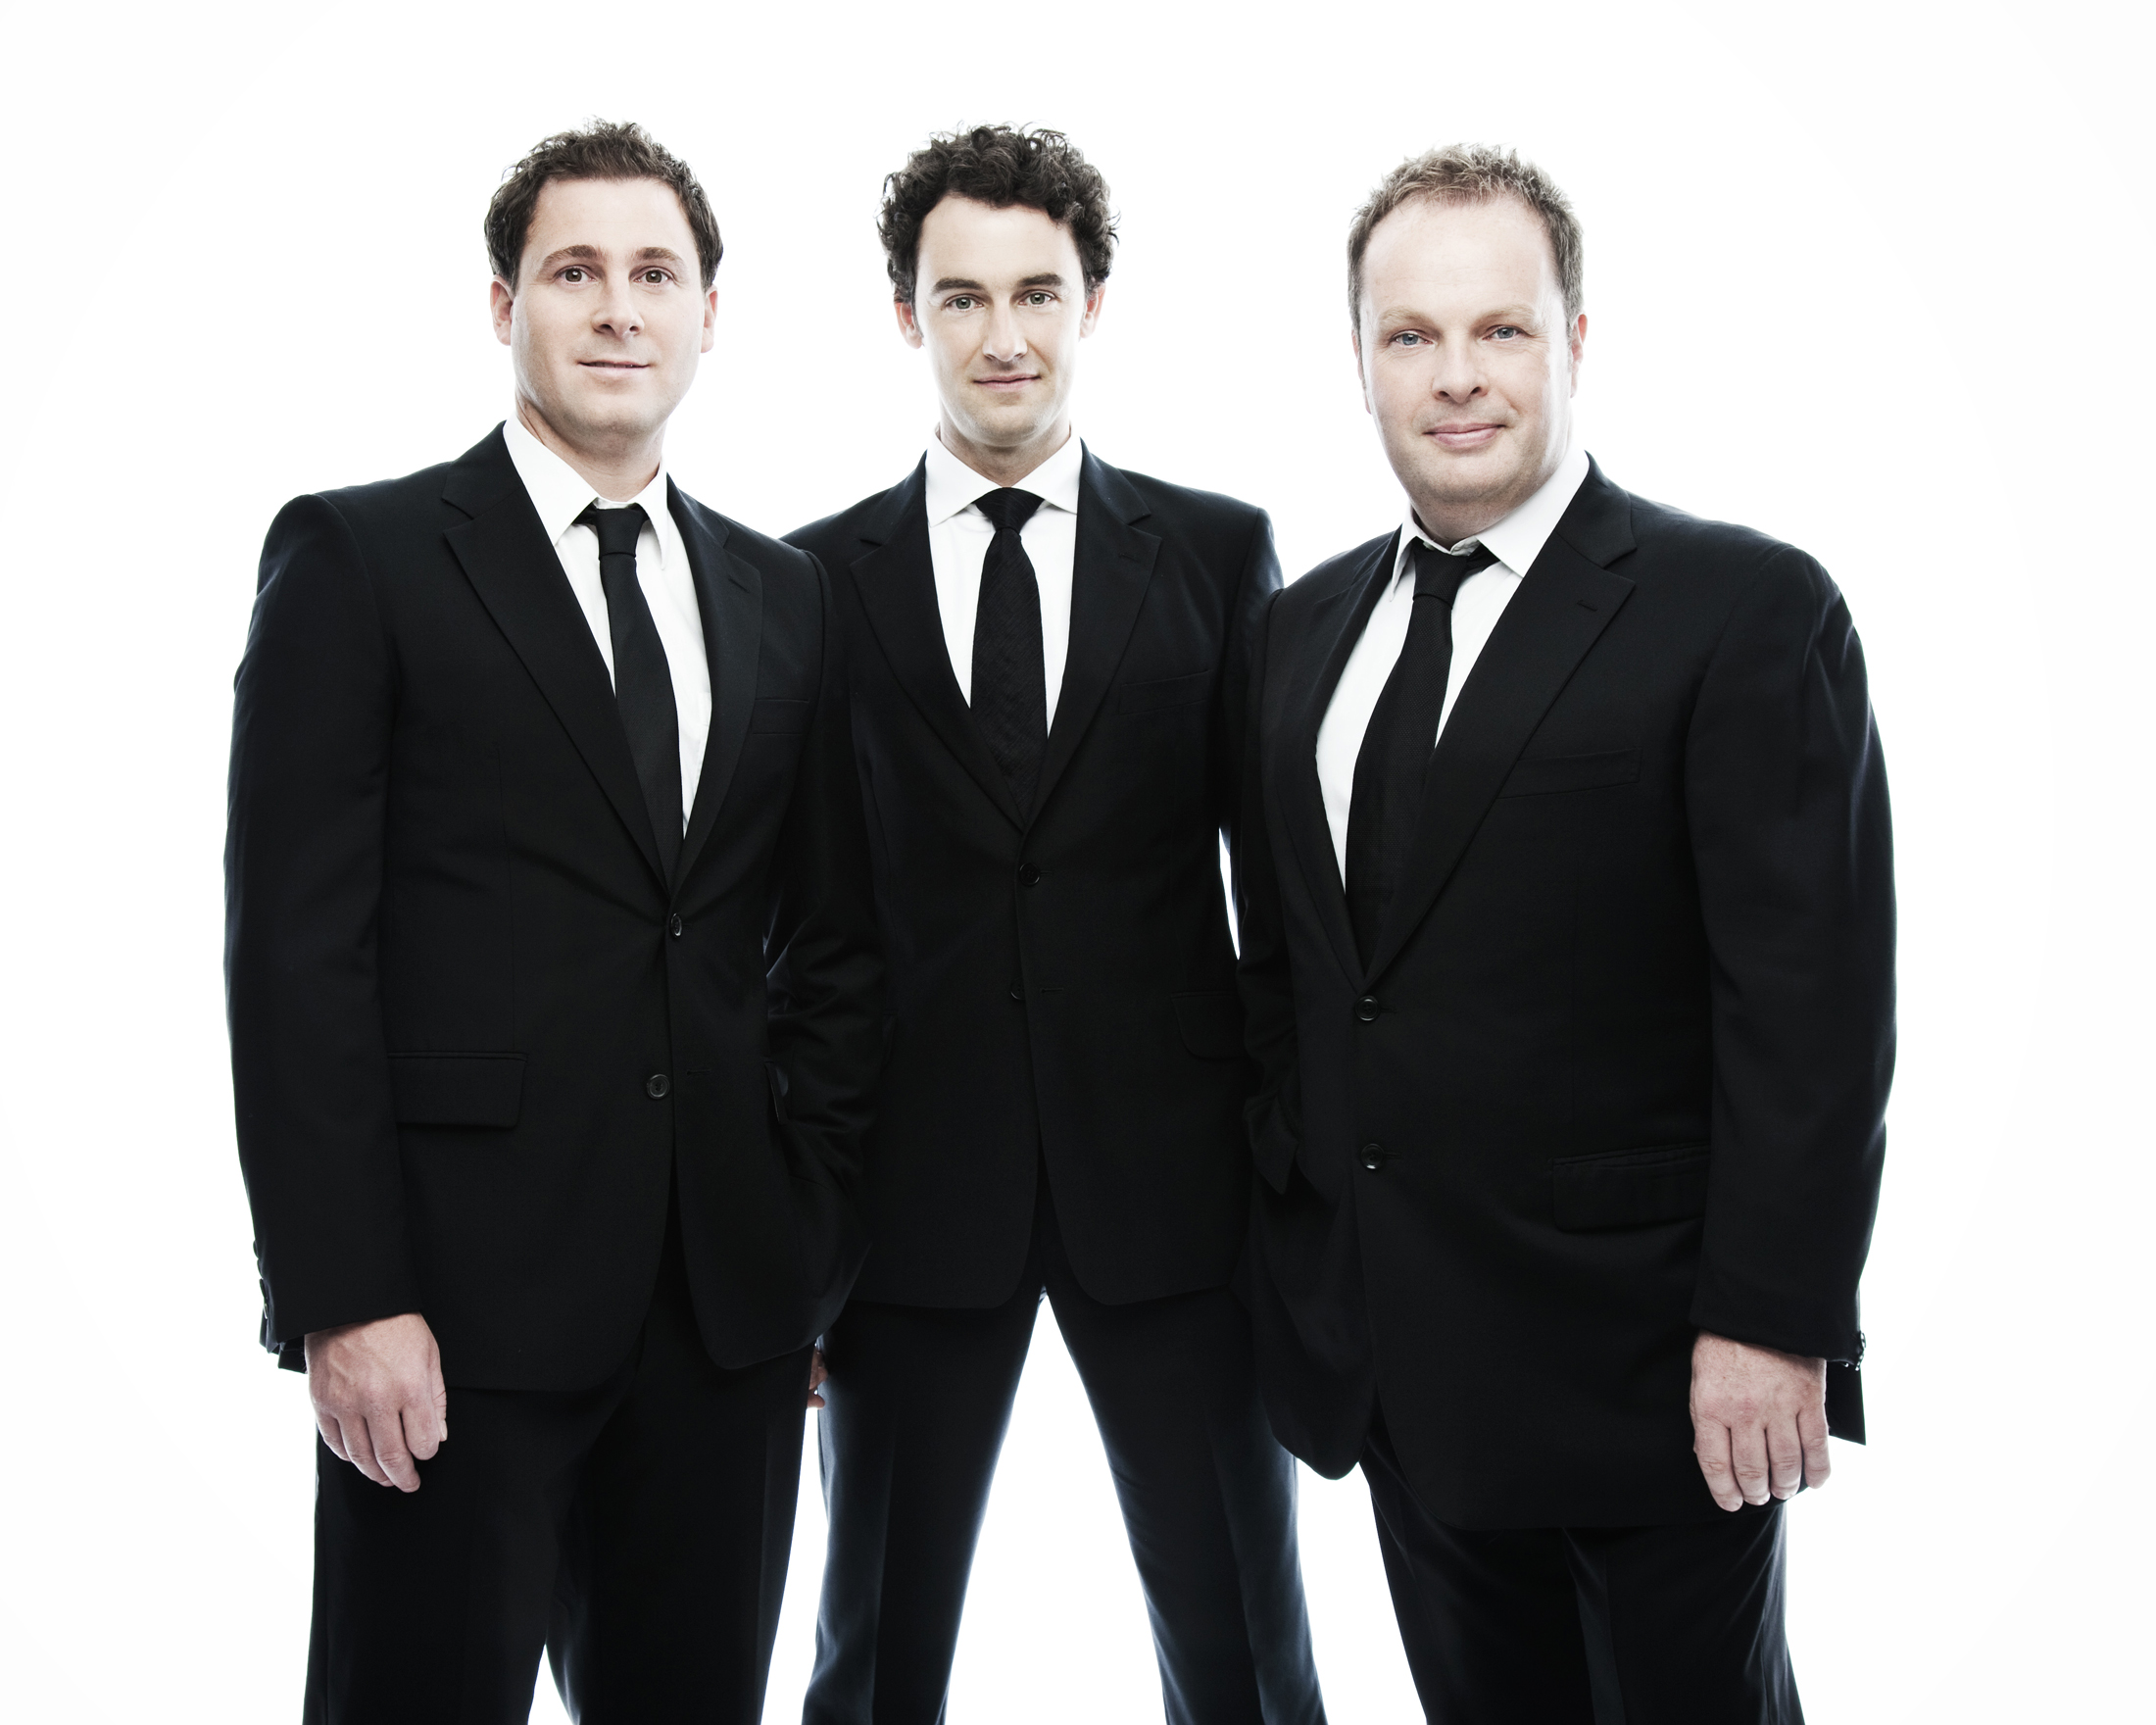 Celtic_Tenors6_by-Baryy_McCall.jpg